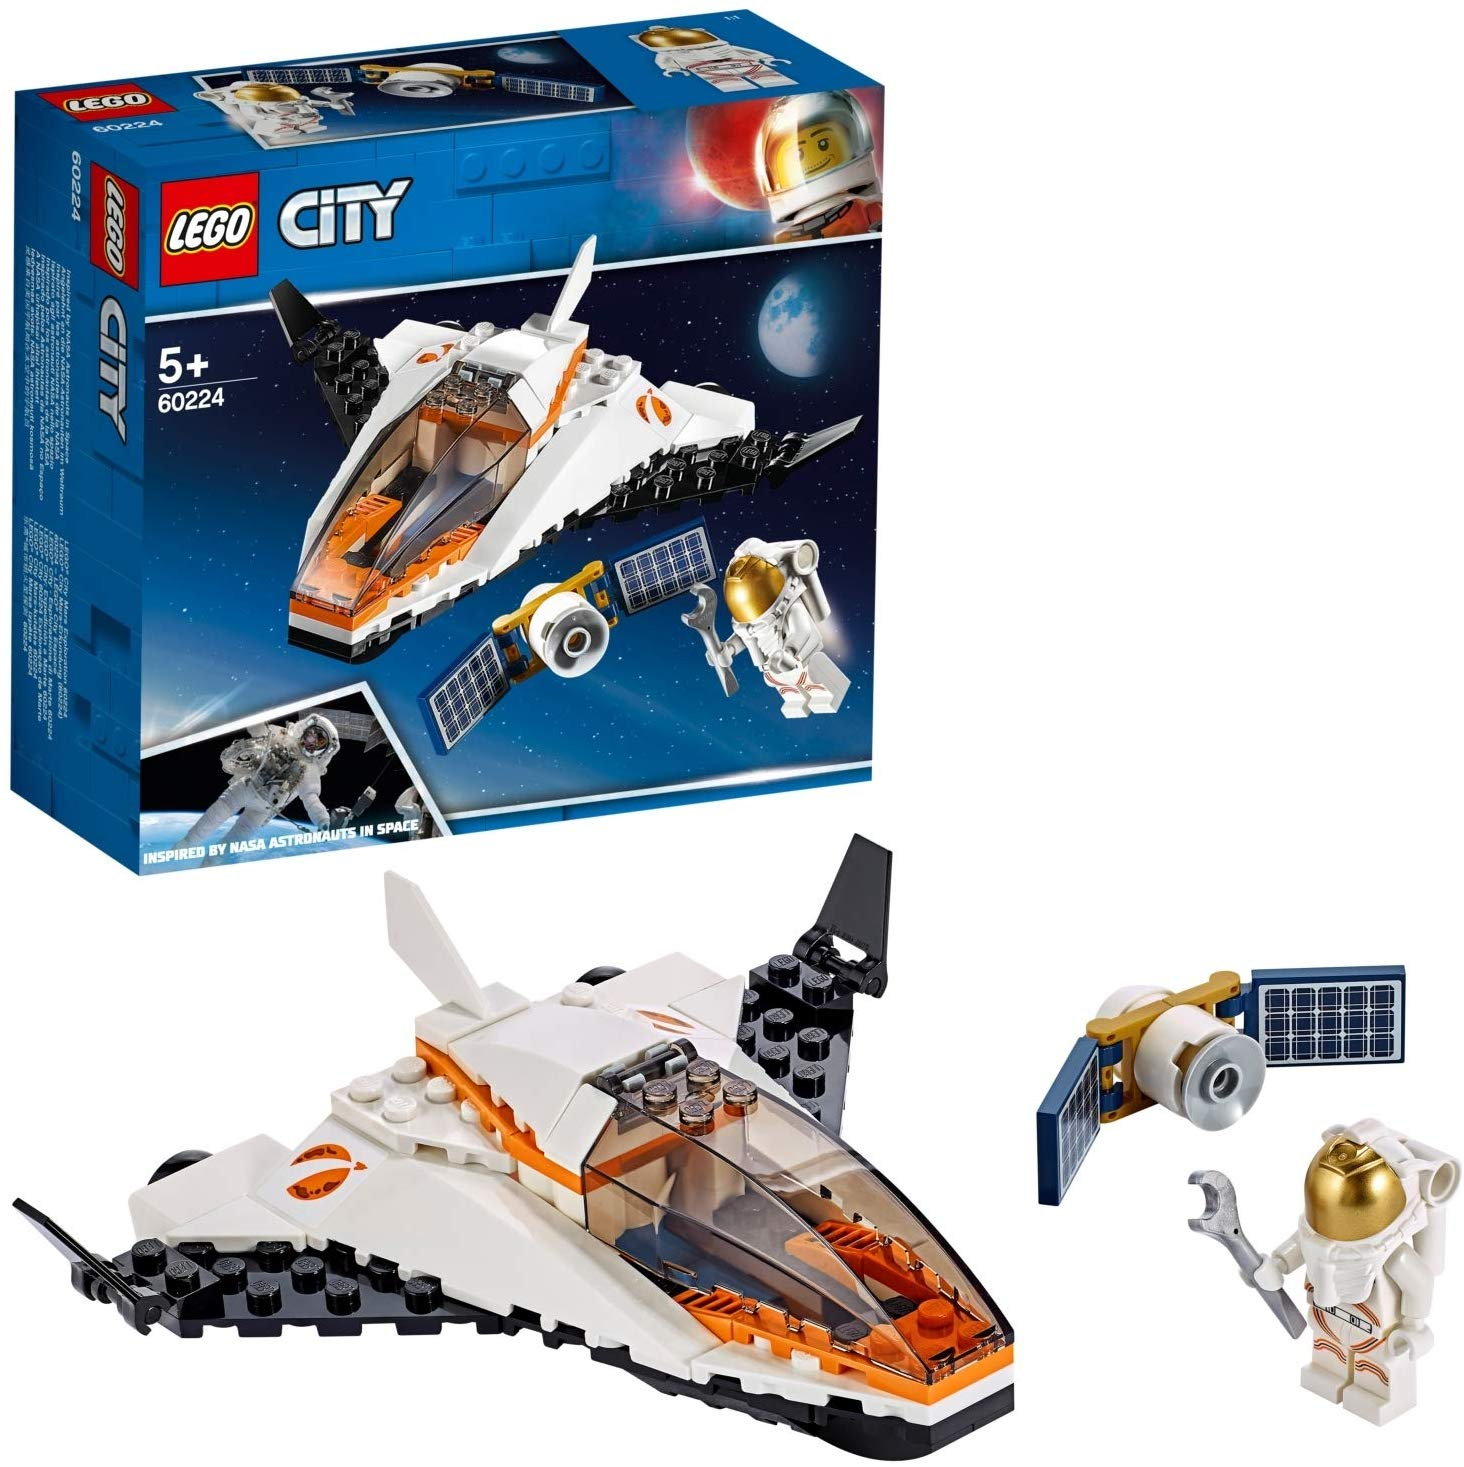 LEGO City Satellite Service Mission Mini Space Shuttle Toy